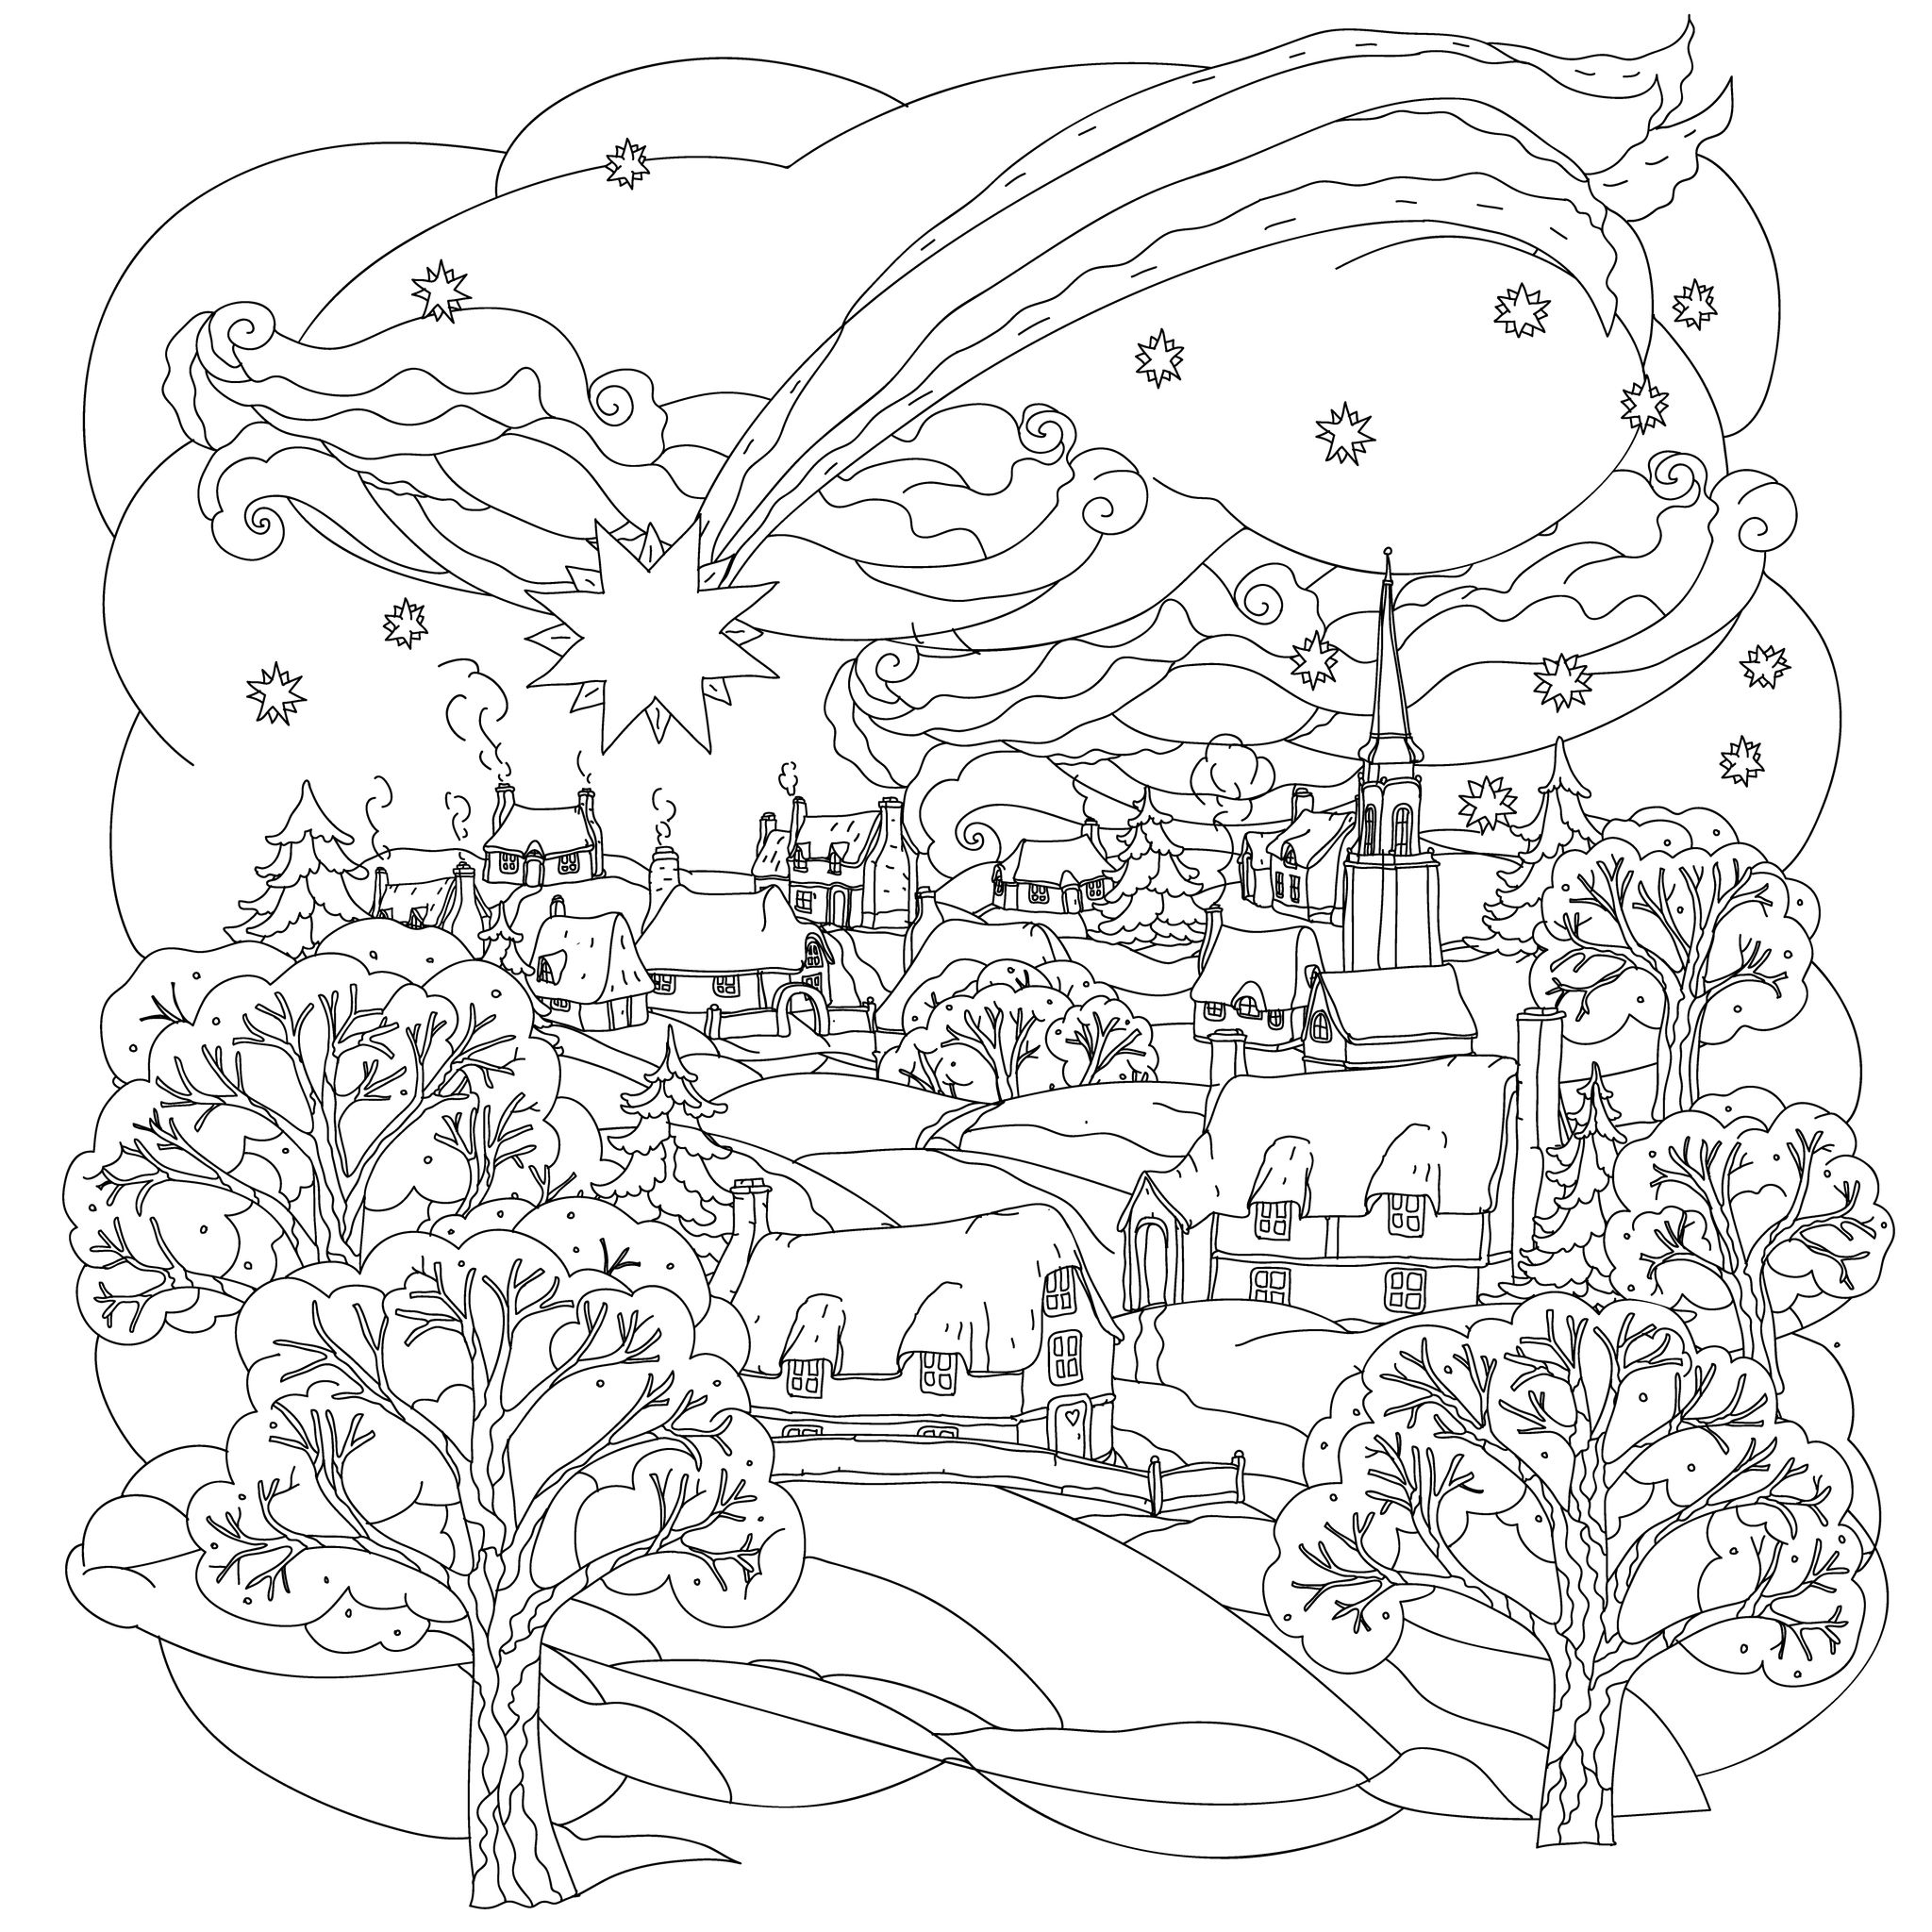 Christmas coloring page to download for free